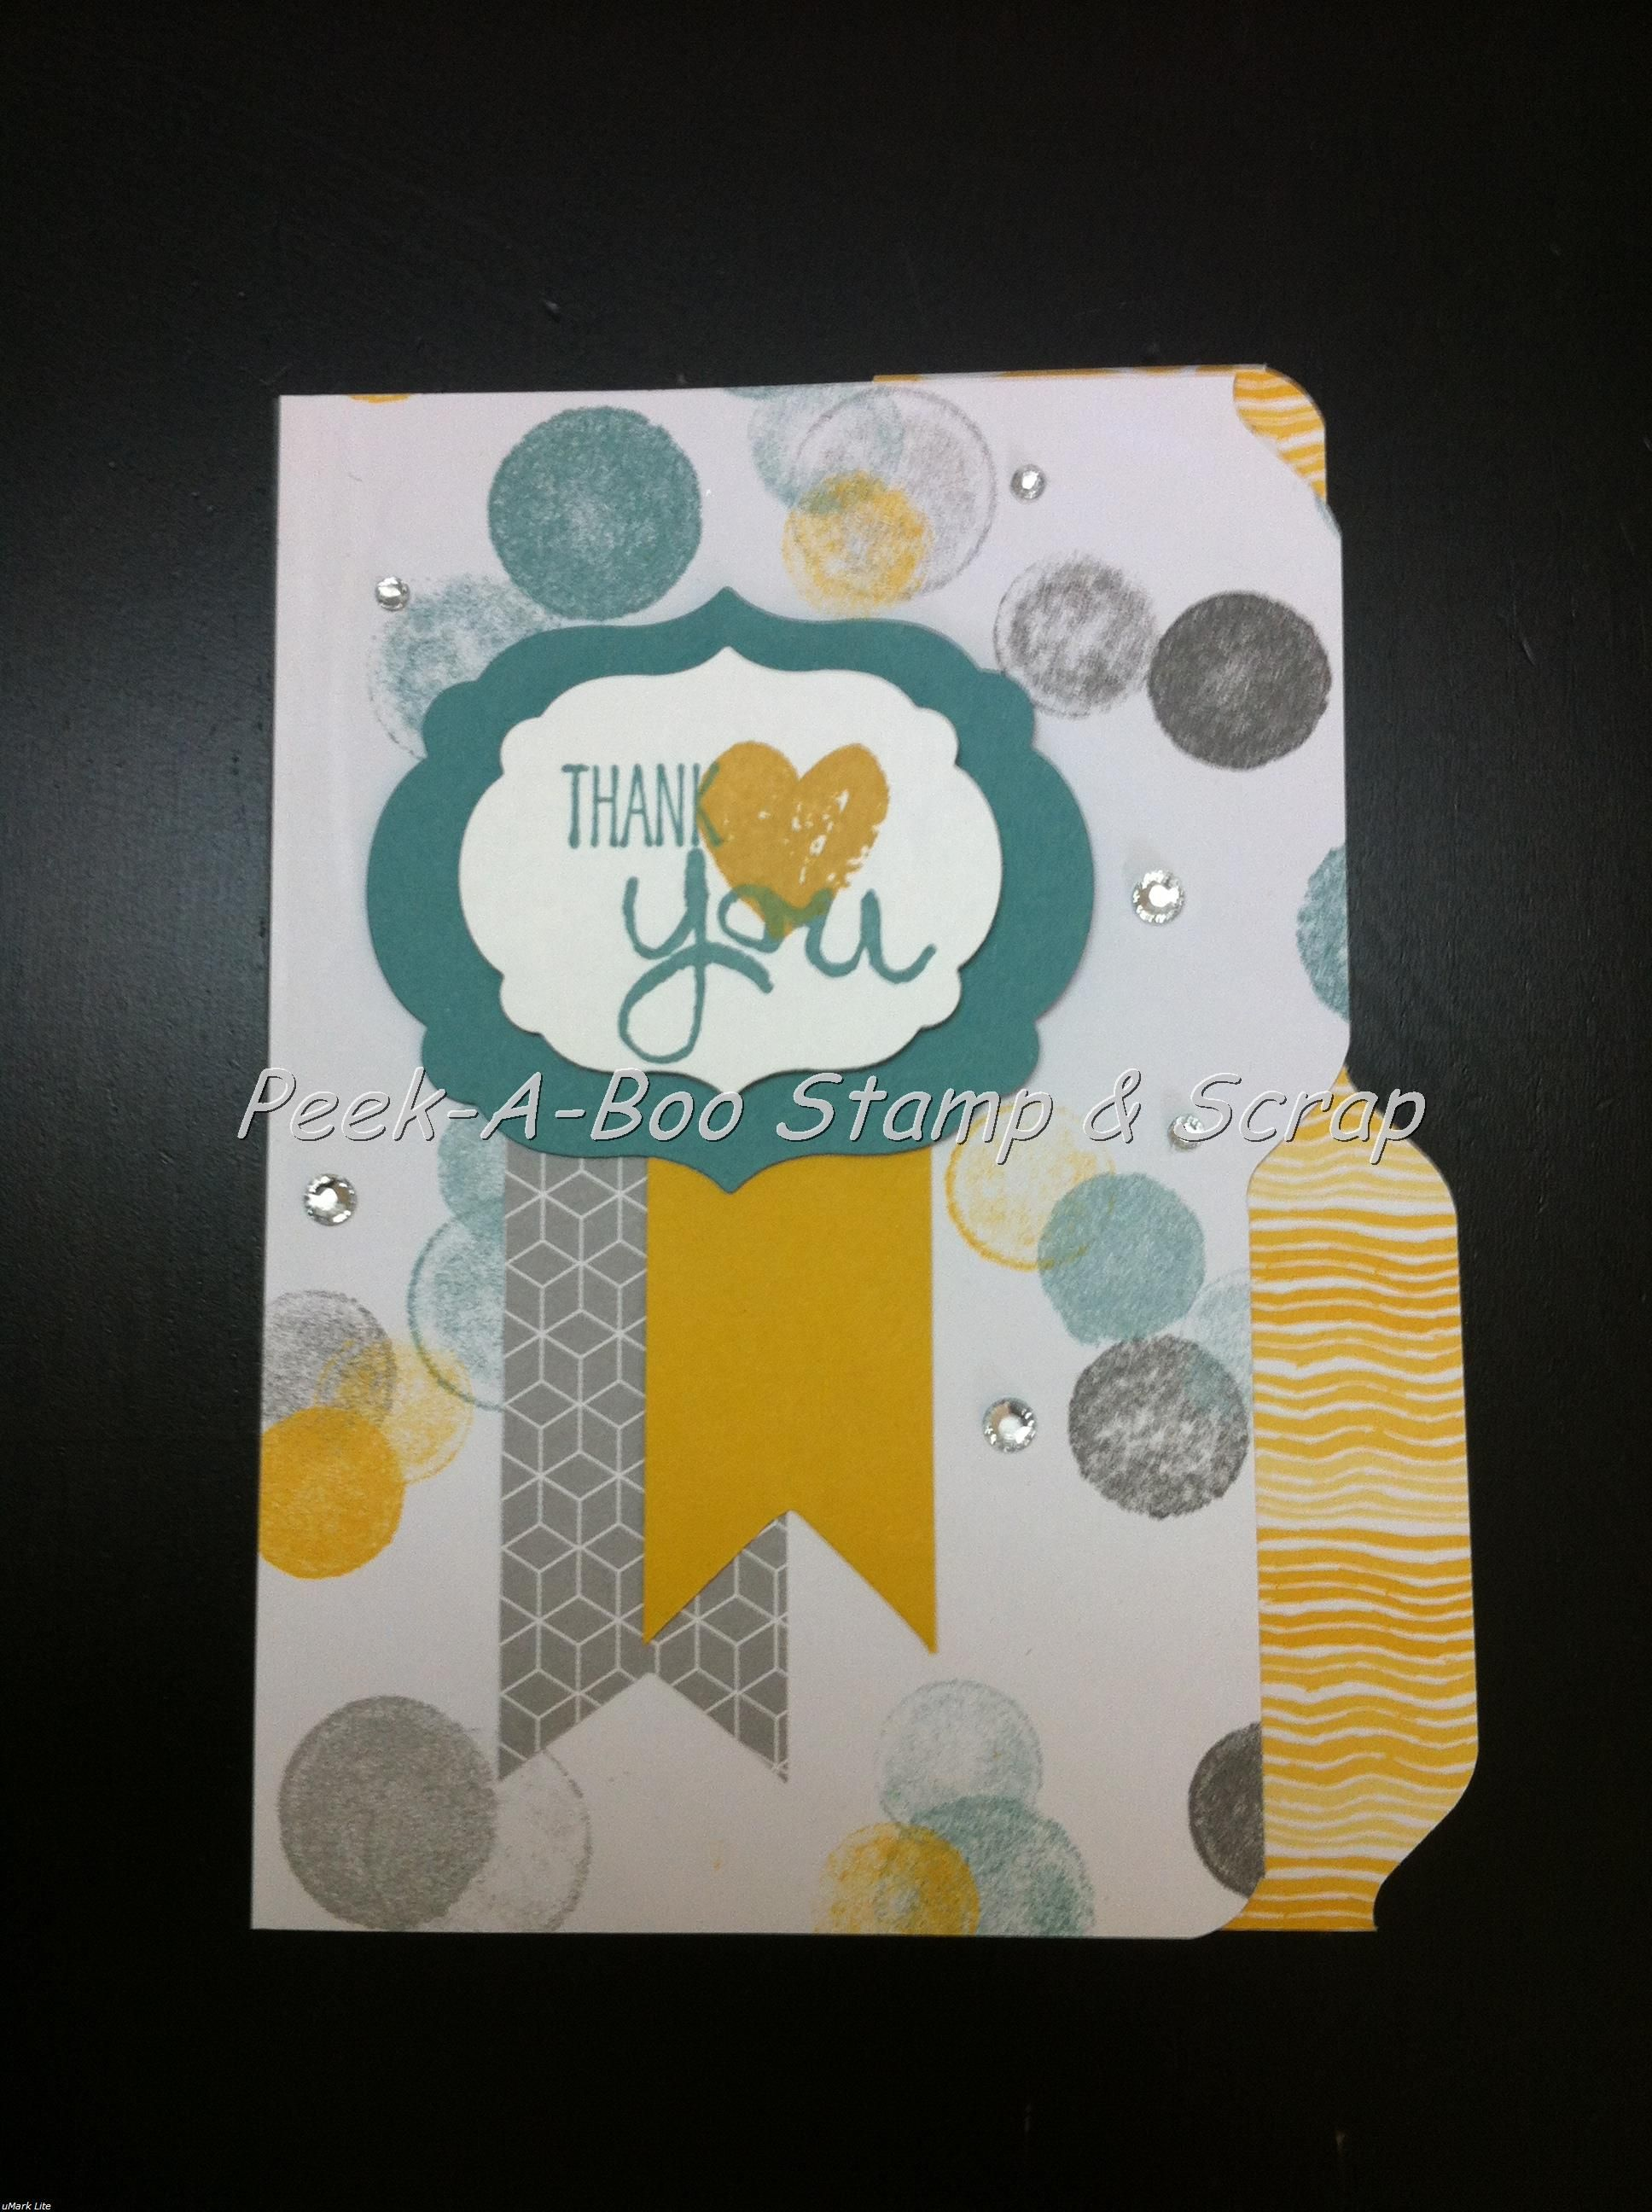 File Check Out Card catalogue reveal class card! file folder envelope board card